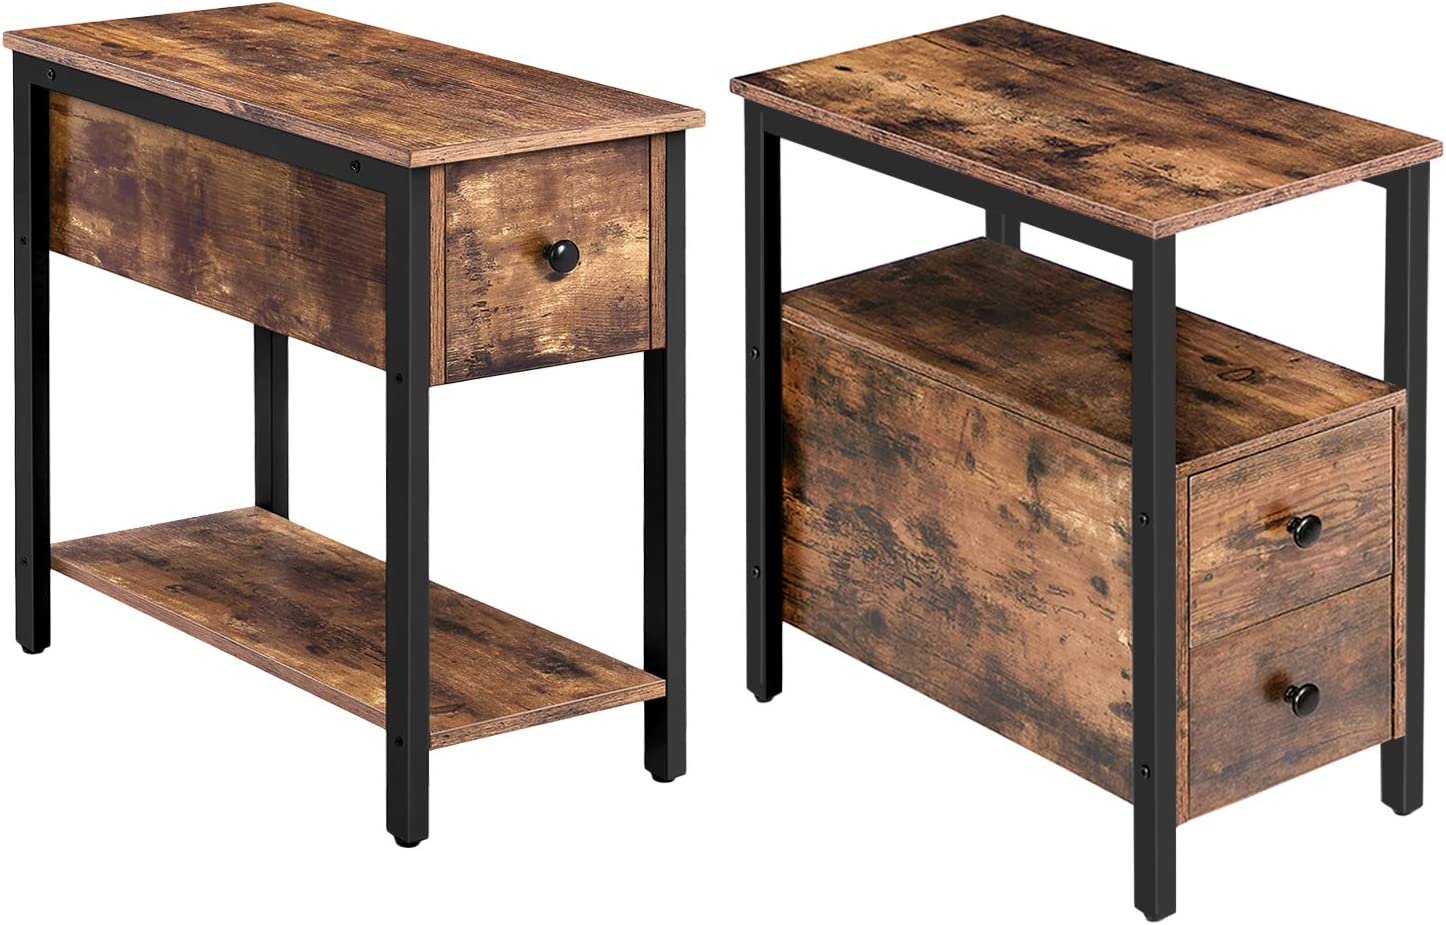 HOOBRO End Table and Side Table Bundle, Chairside Table with 2 Drawer and Open Storage Shelf, 2-Tier Nightstand with Drawer, Industrial Style, Wood Look Accent Furniture with Metal Frame, Rustic Brown